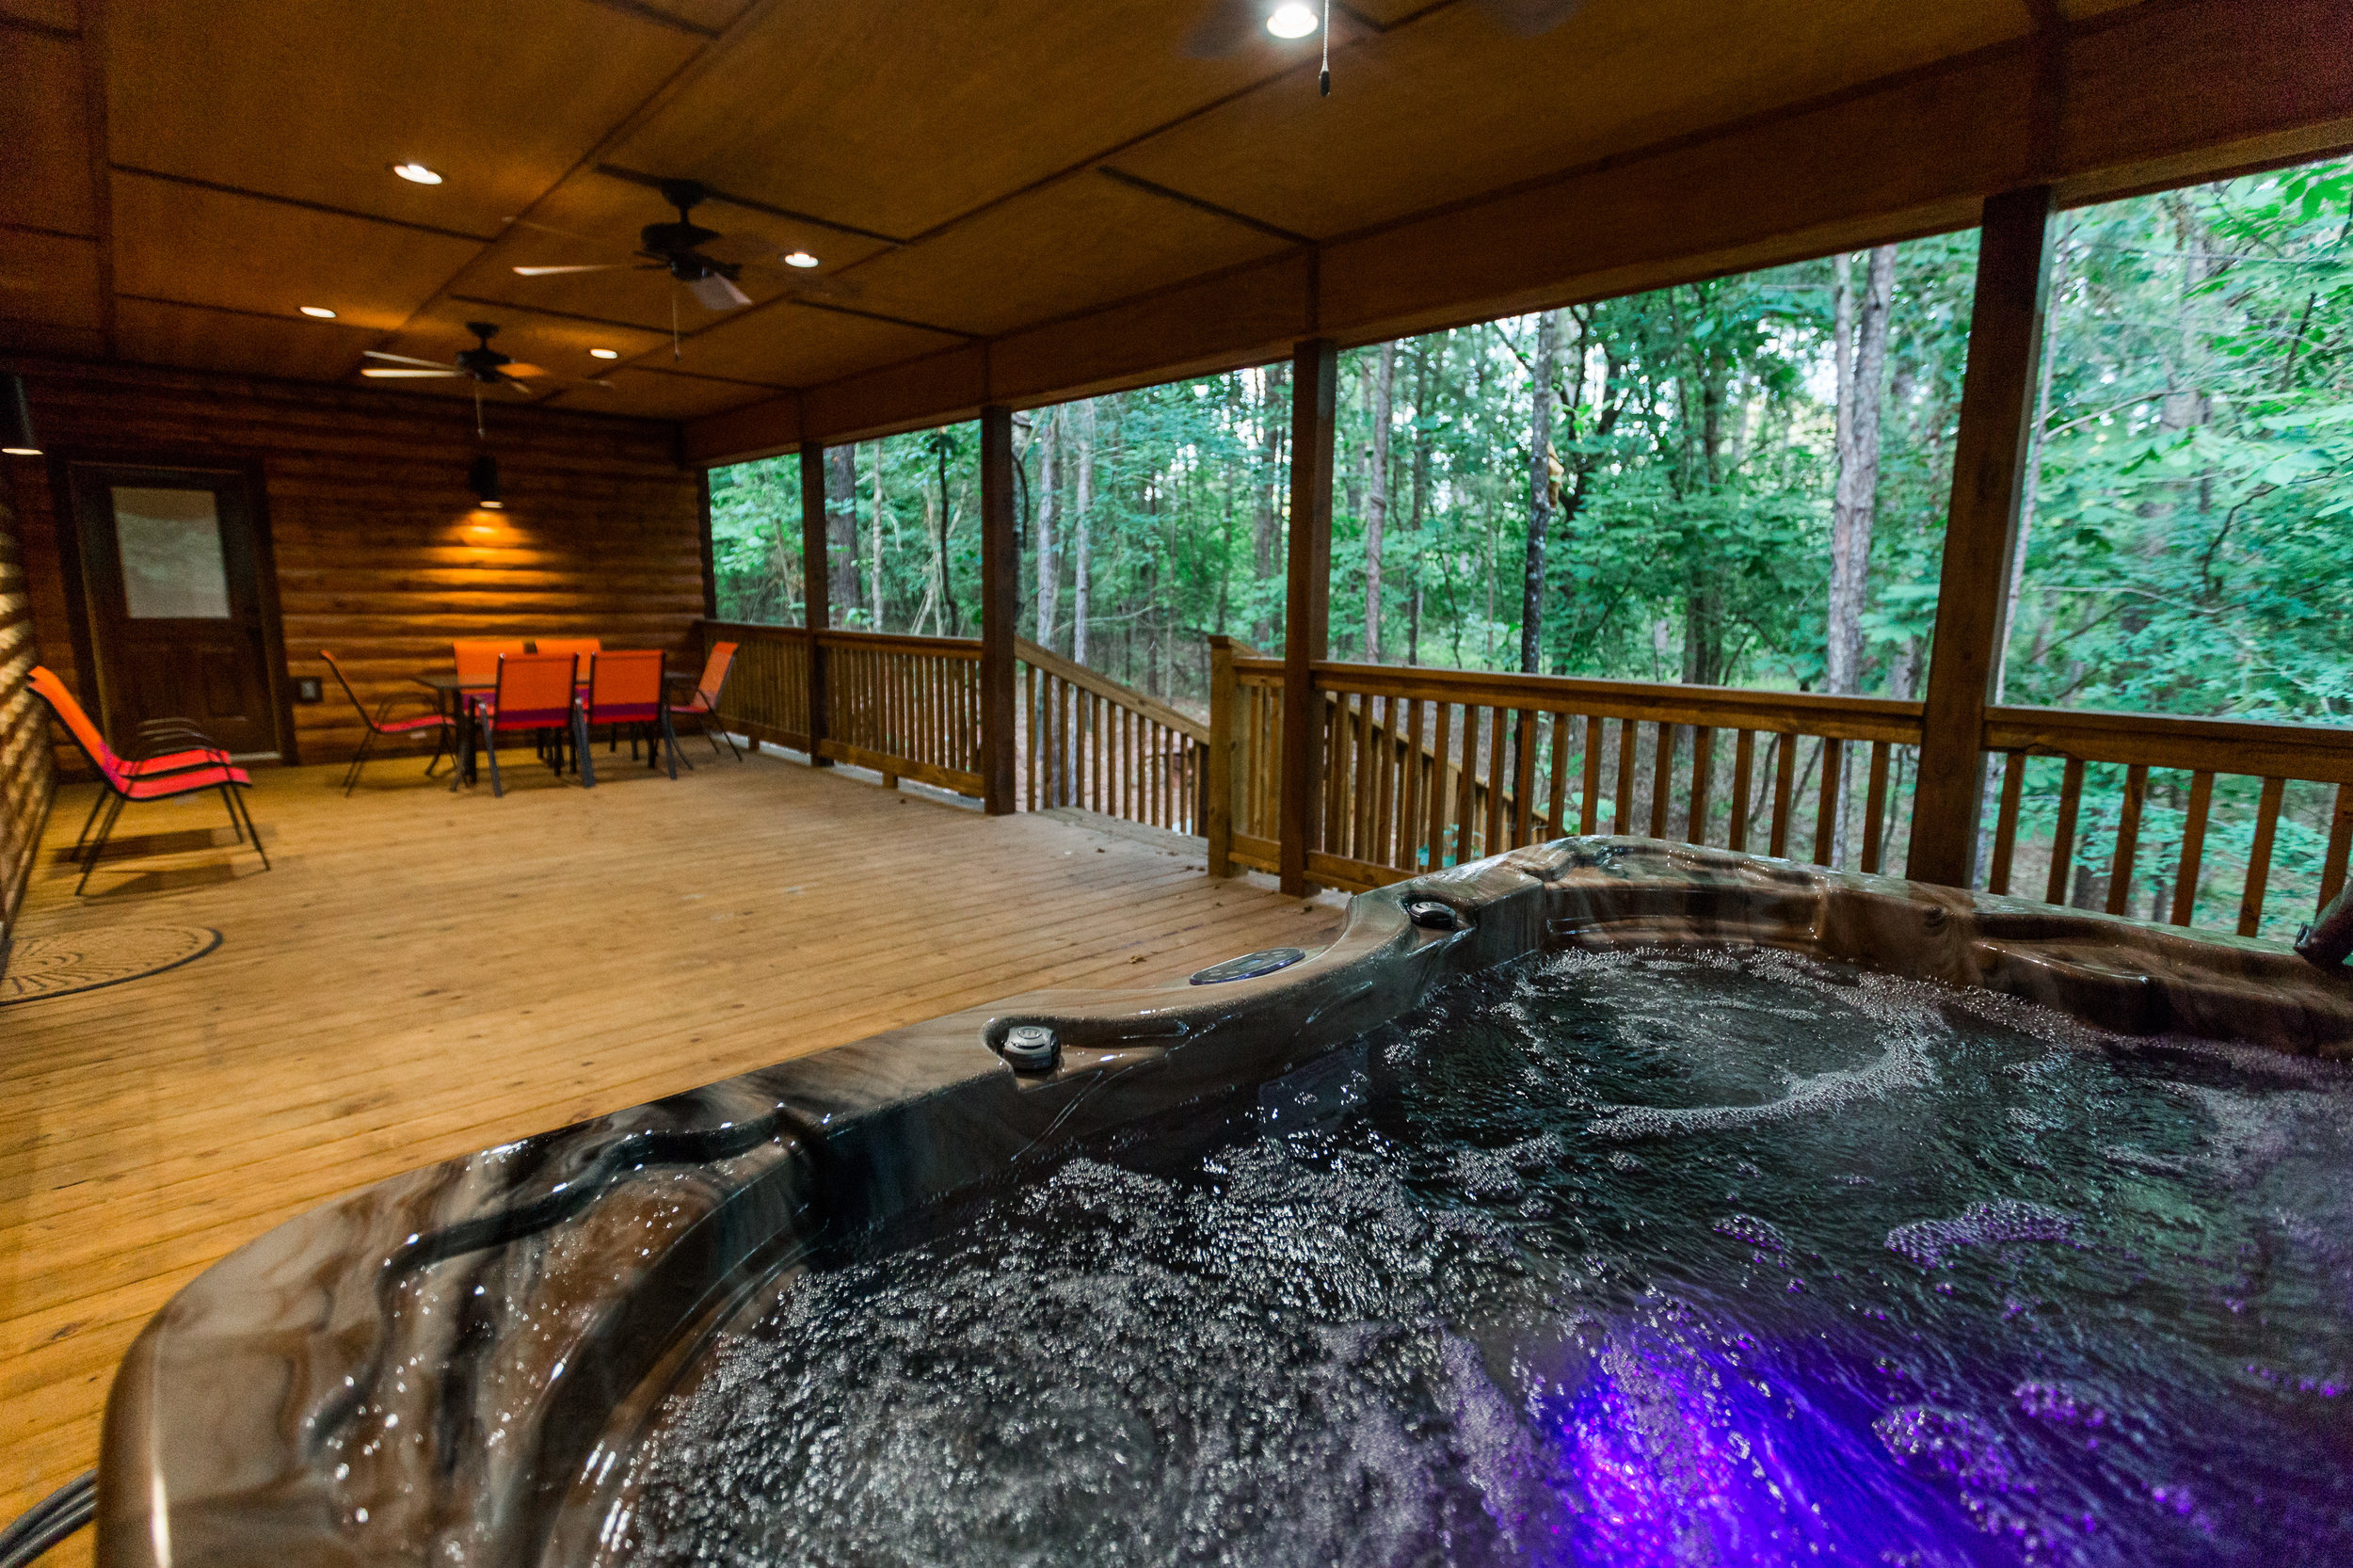 oklahoma luxury cabin rentals beavers bend vacation getaway hochatown mount fork river stephens gap lake ouachita mountains kitchen rustic log hot tub deck outdoor